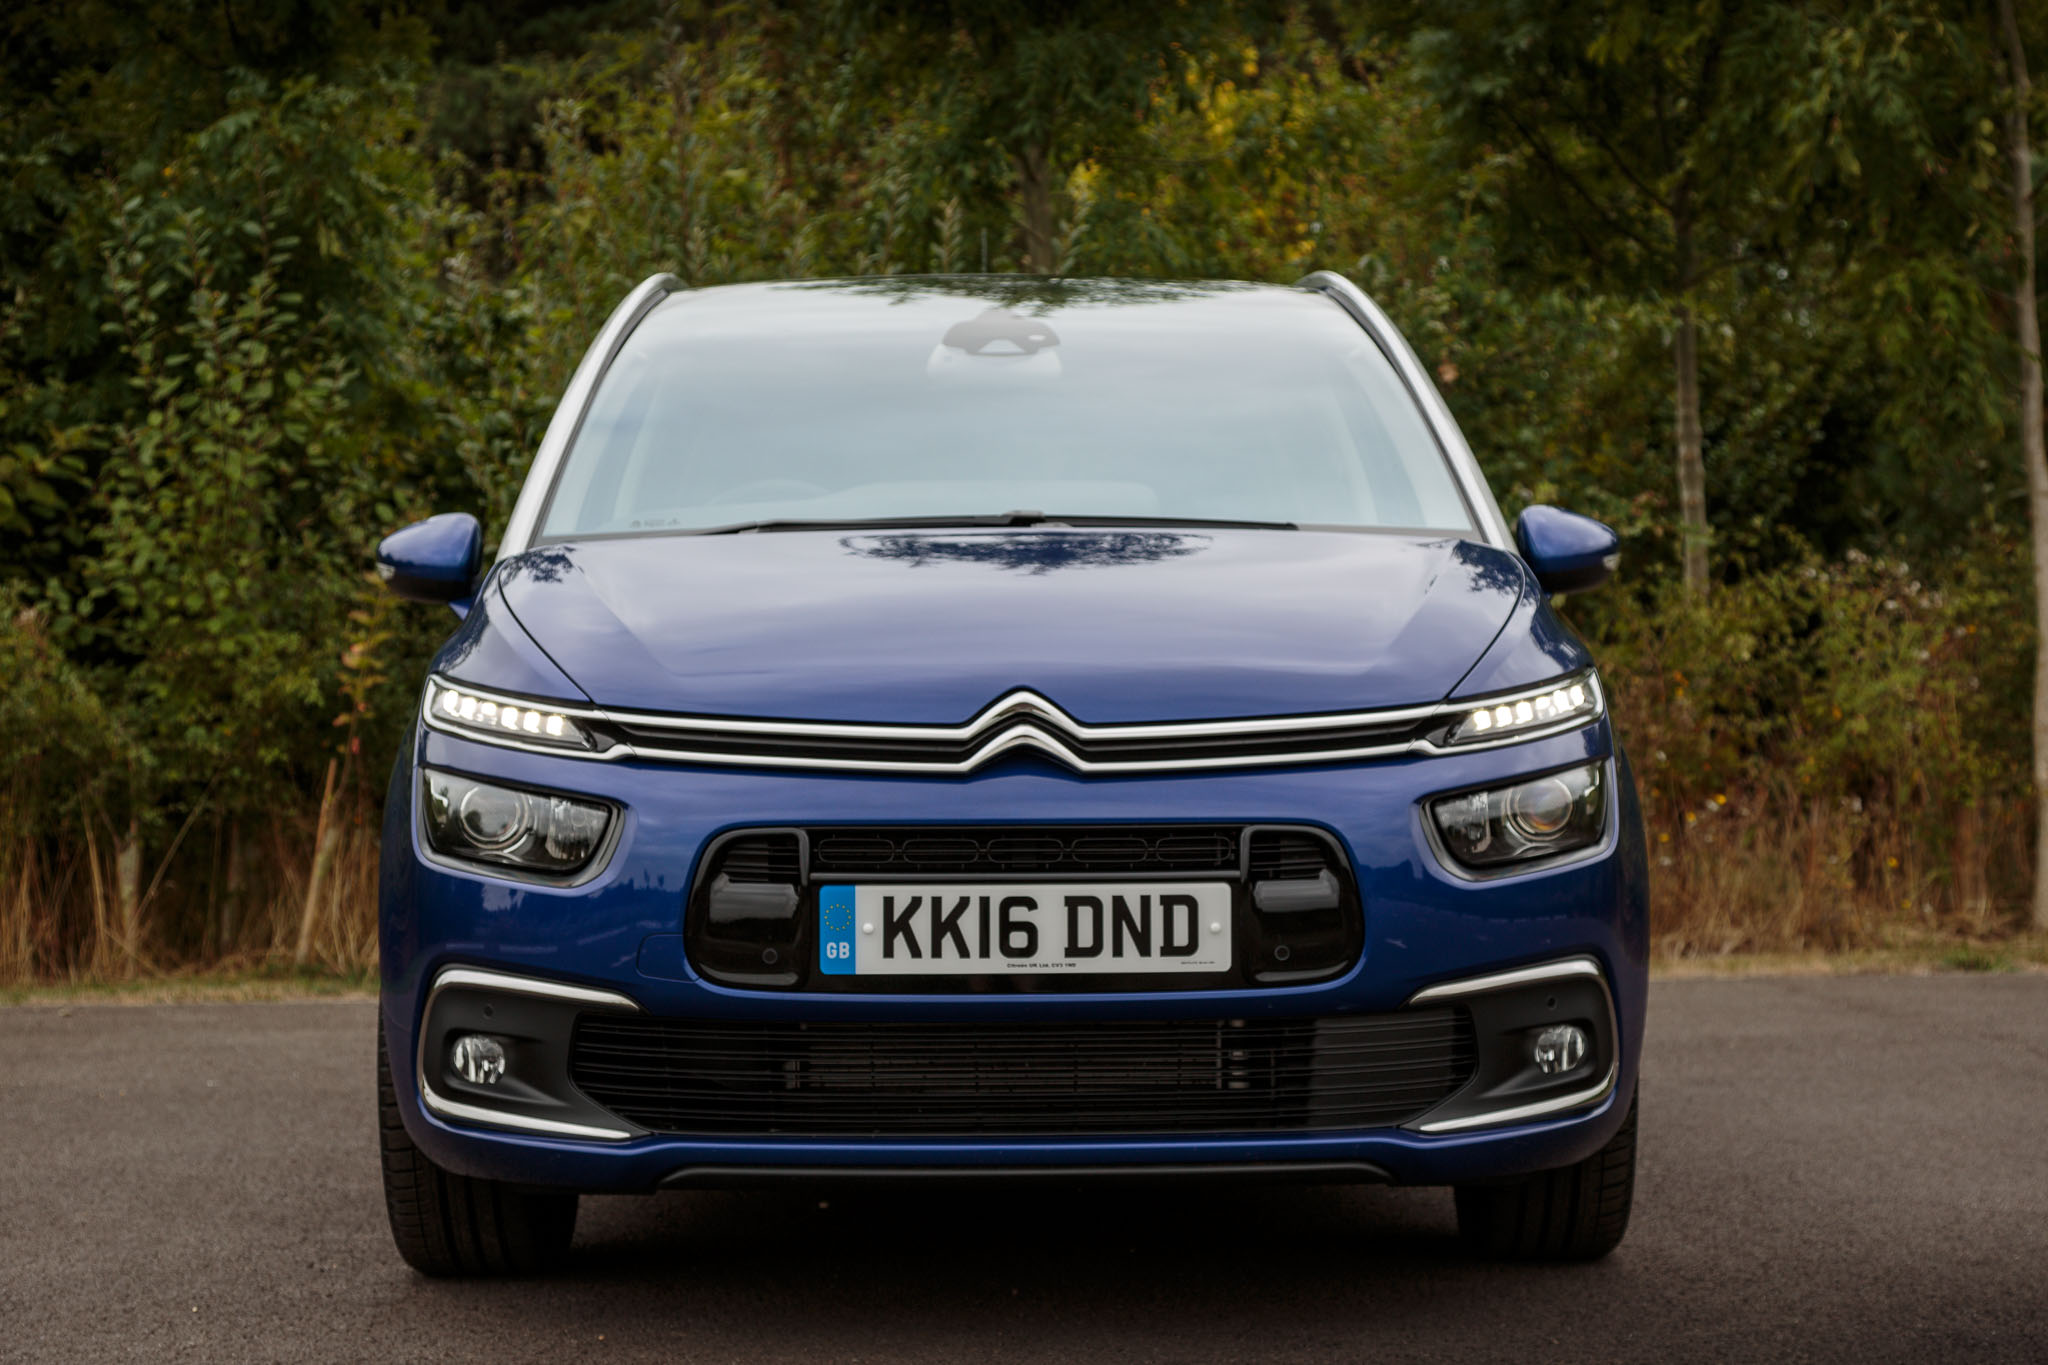 2016 citroen c4 grand picasso review. Black Bedroom Furniture Sets. Home Design Ideas